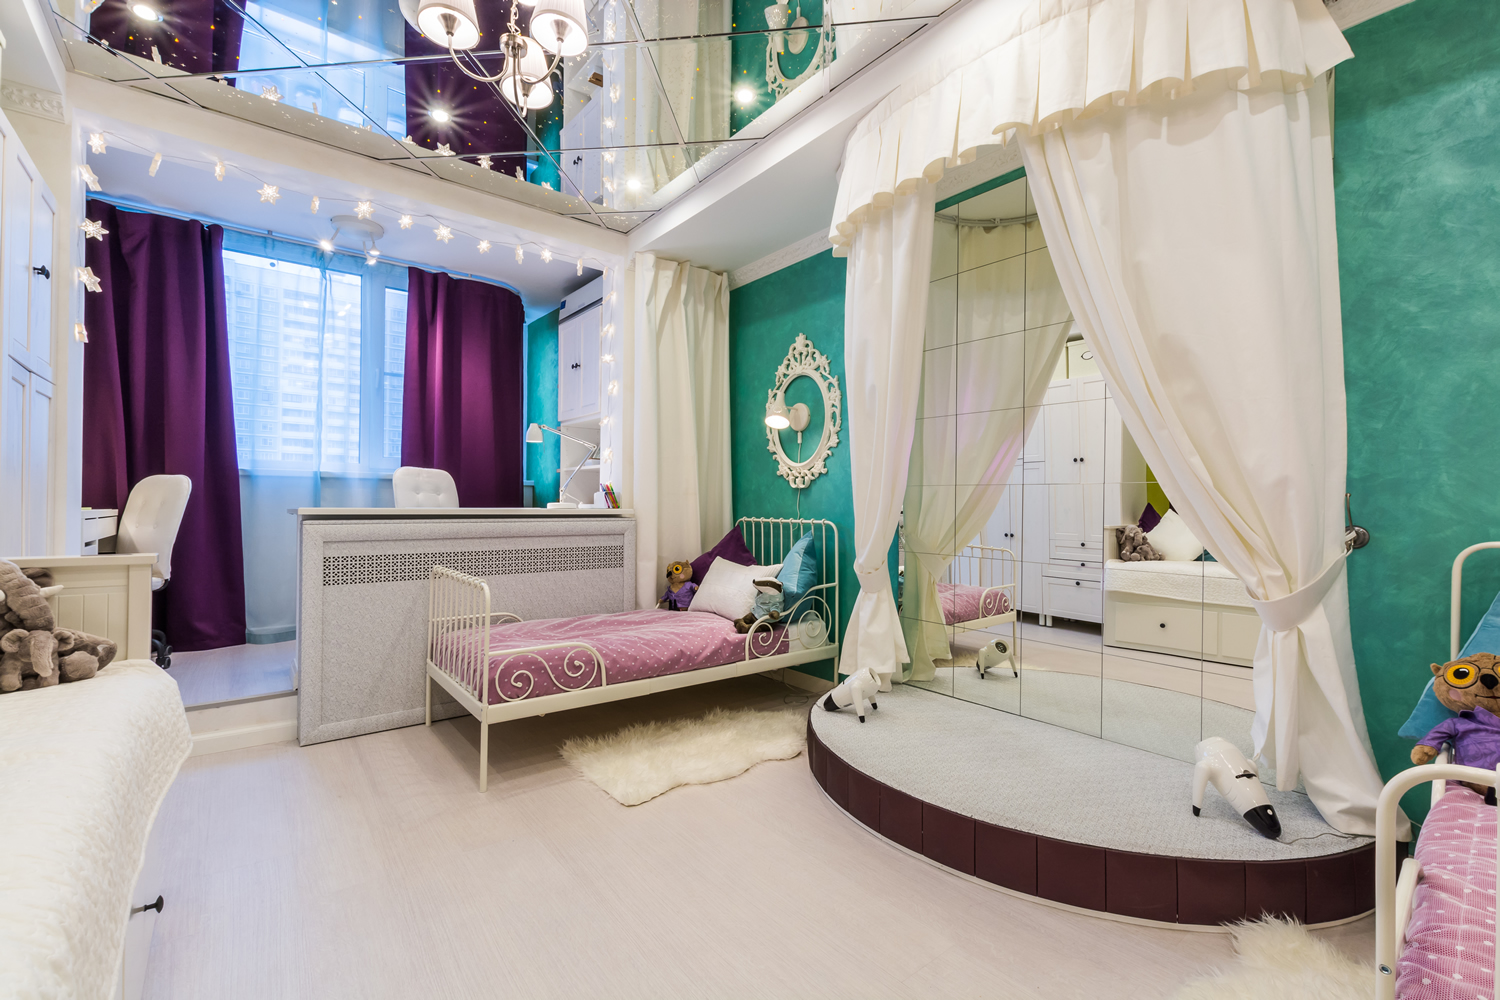 Kitsch Interior Design Style. Bright colors in combination with the white pompous decoration